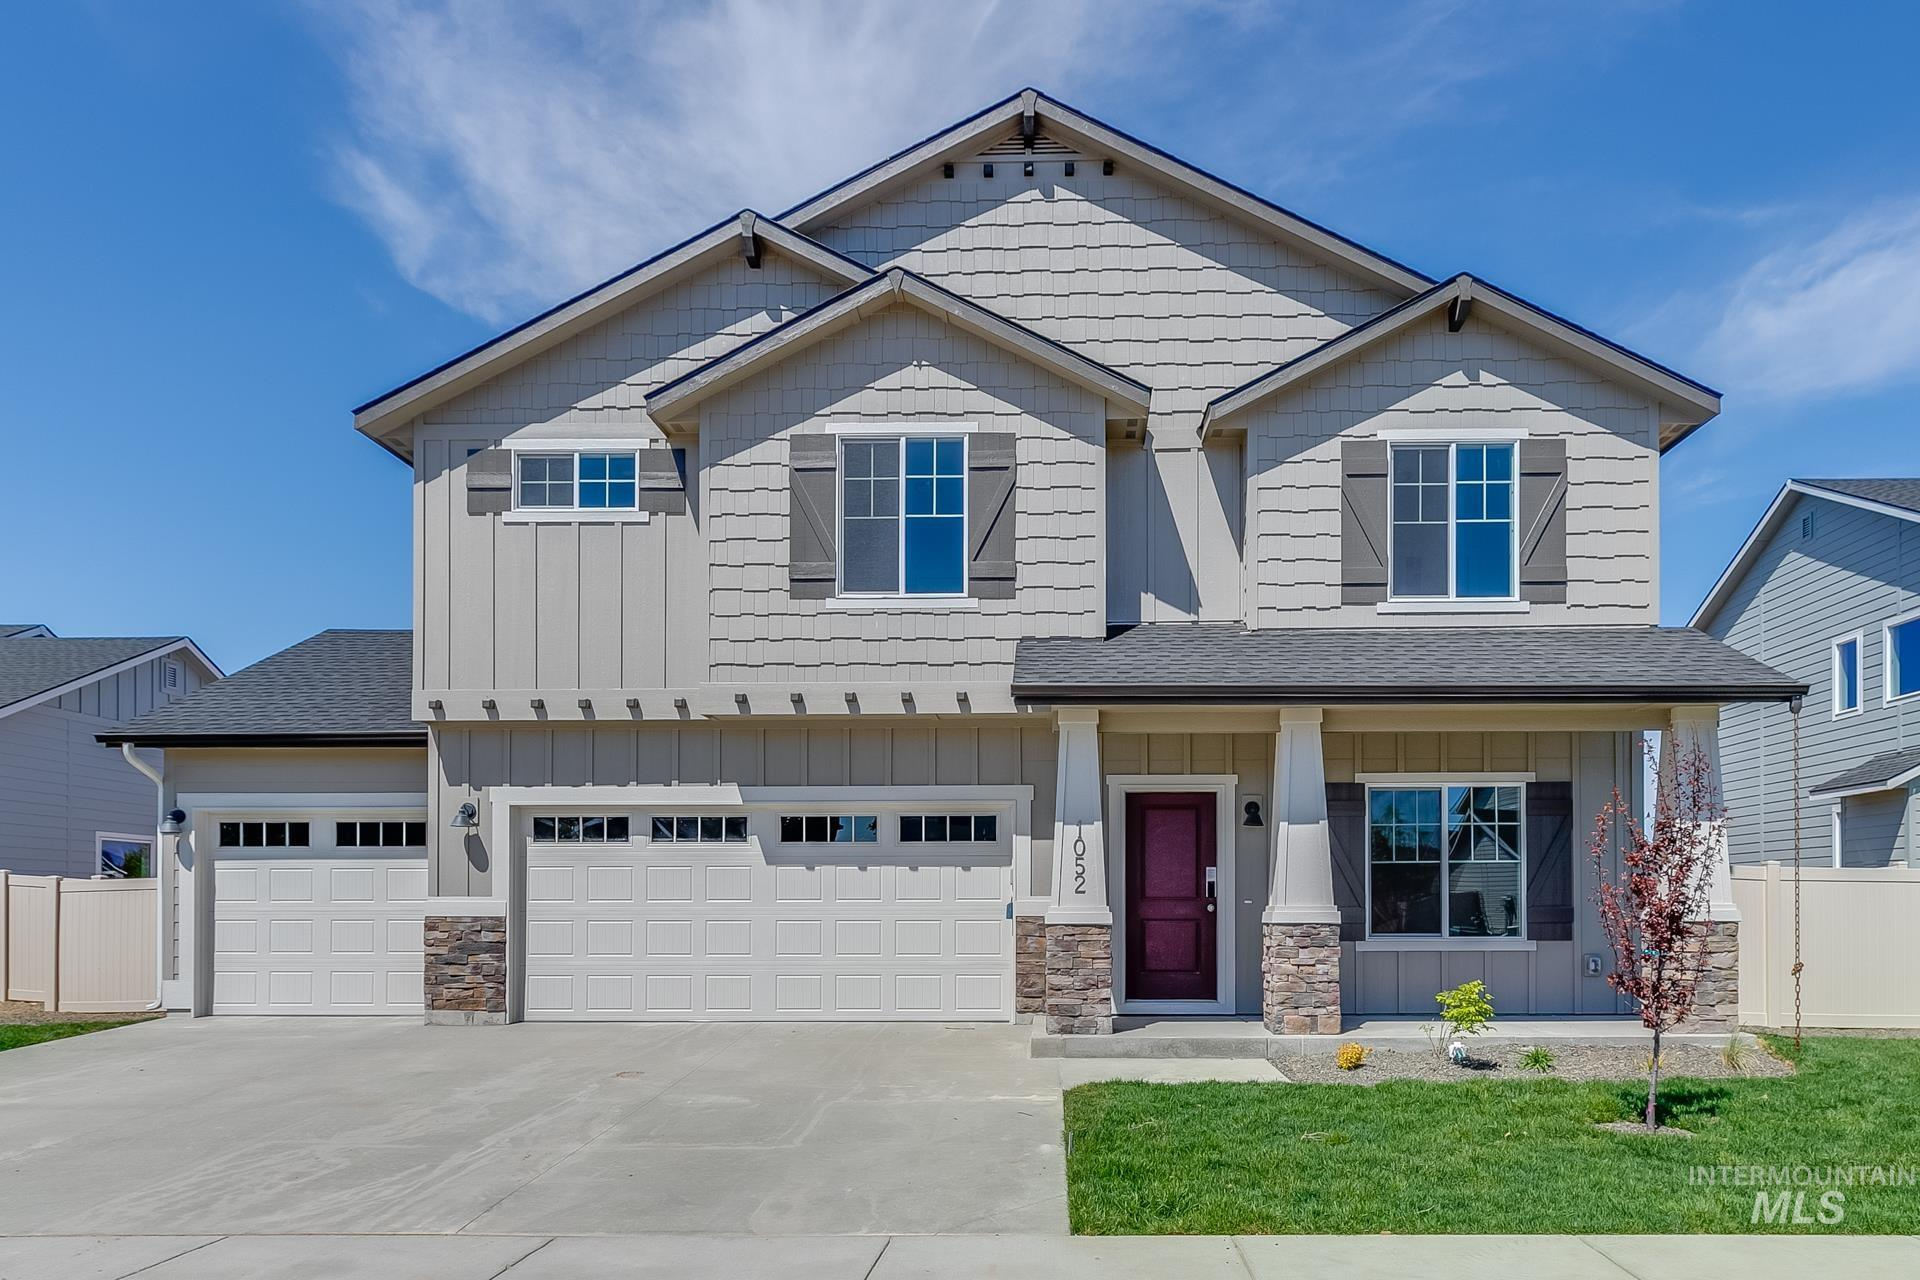 11625 W Indus St Property Photo - Star, ID real estate listing